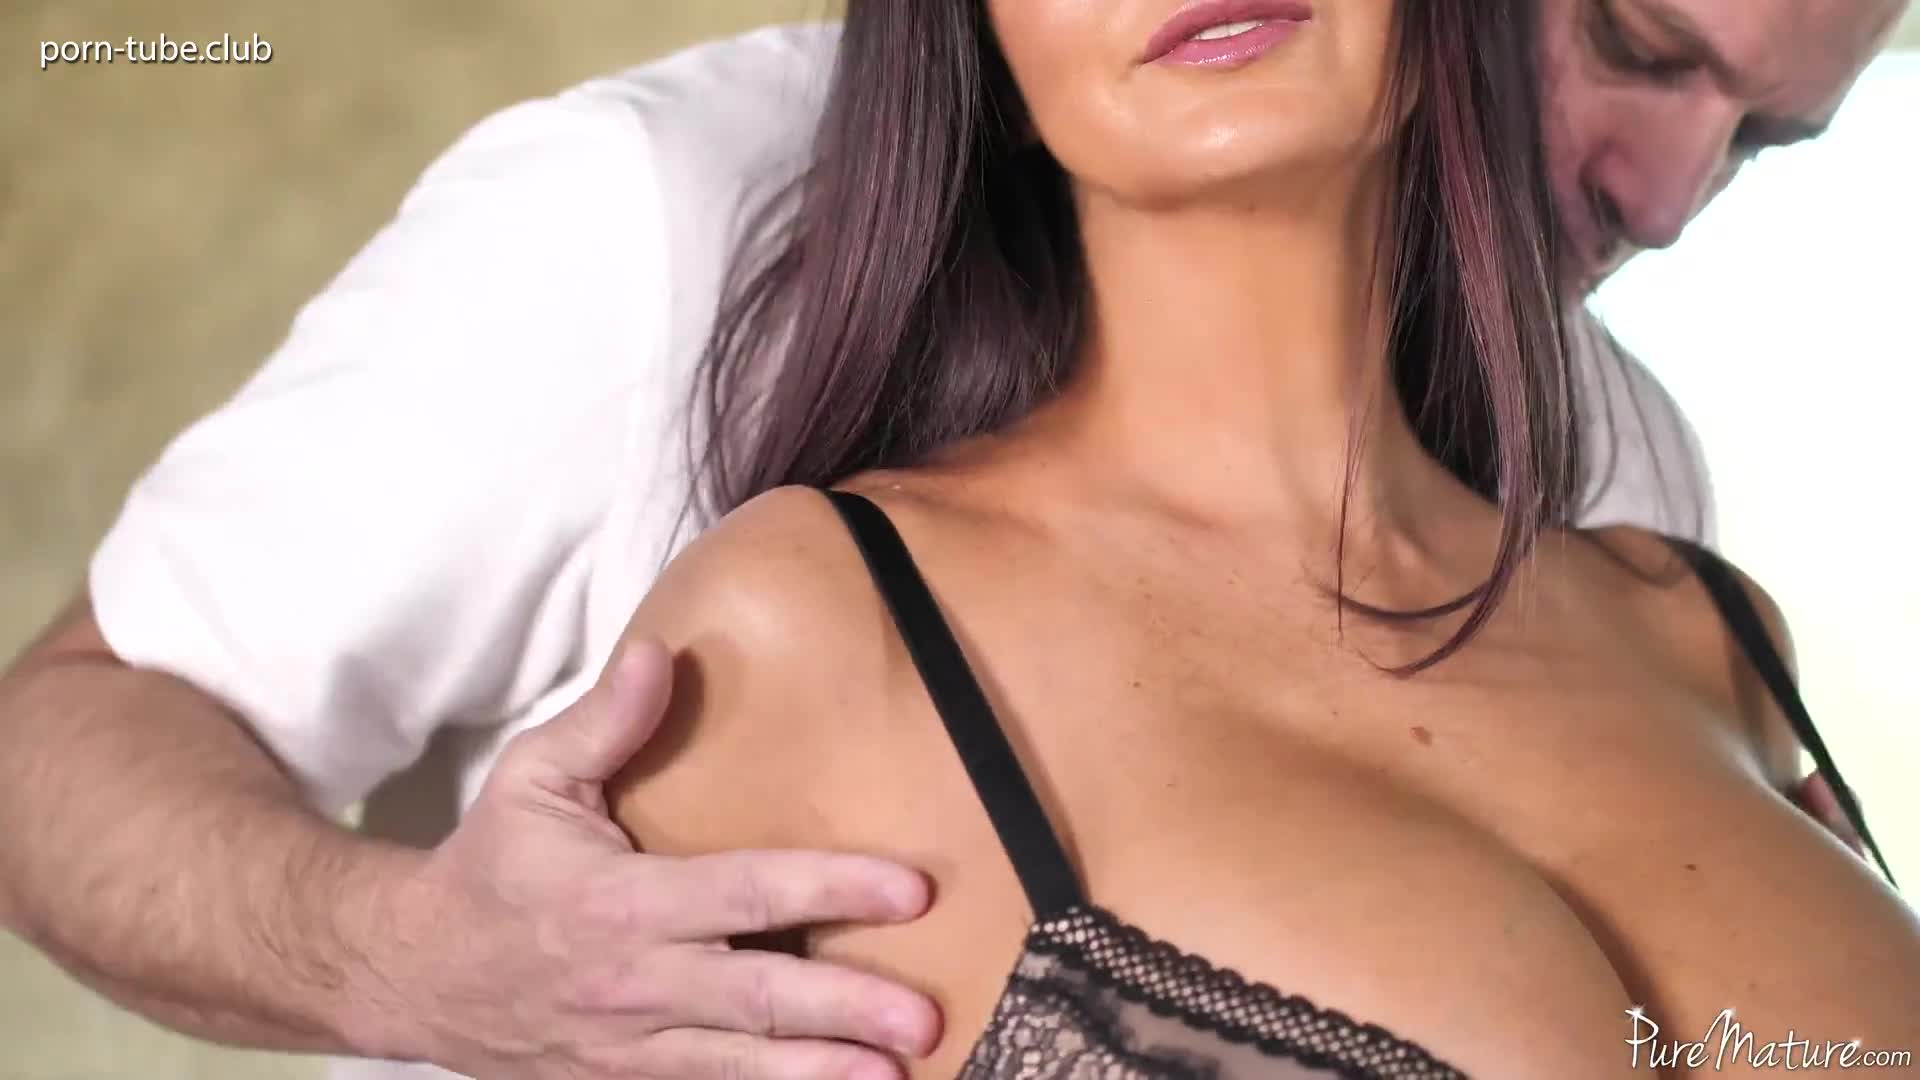 PureMature 17.12.31 Ava Addams Breasts And Body Rub